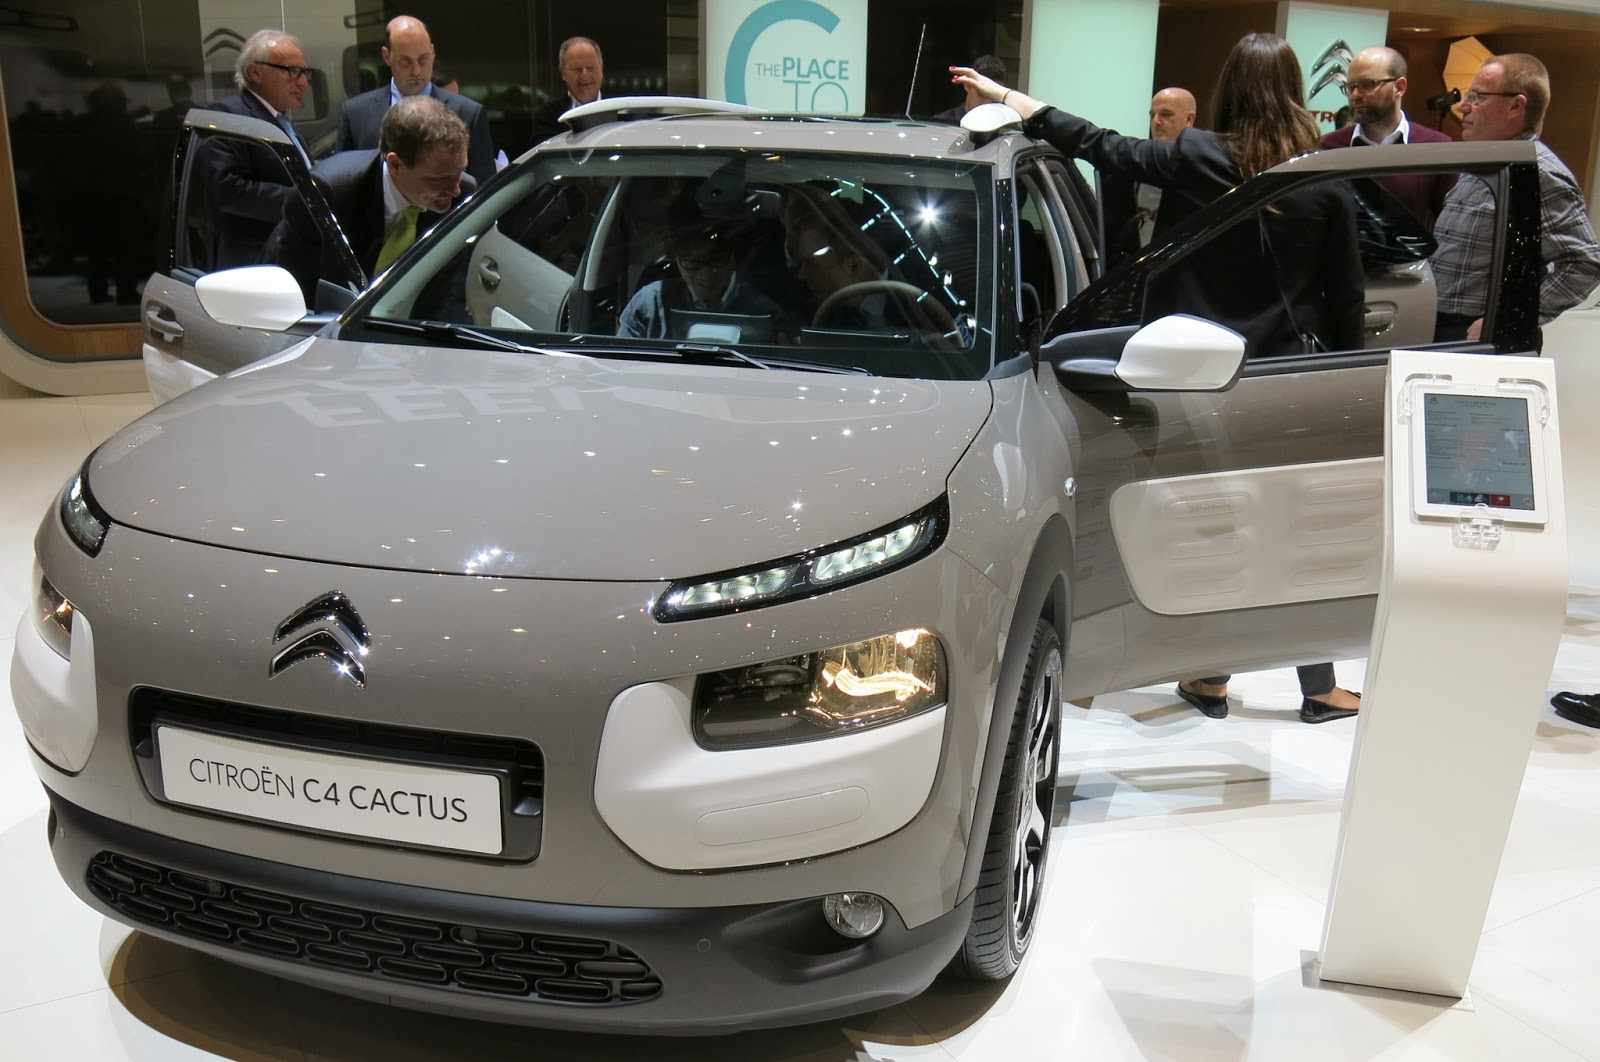 Citroen C4 Cactus the unique design with super technology